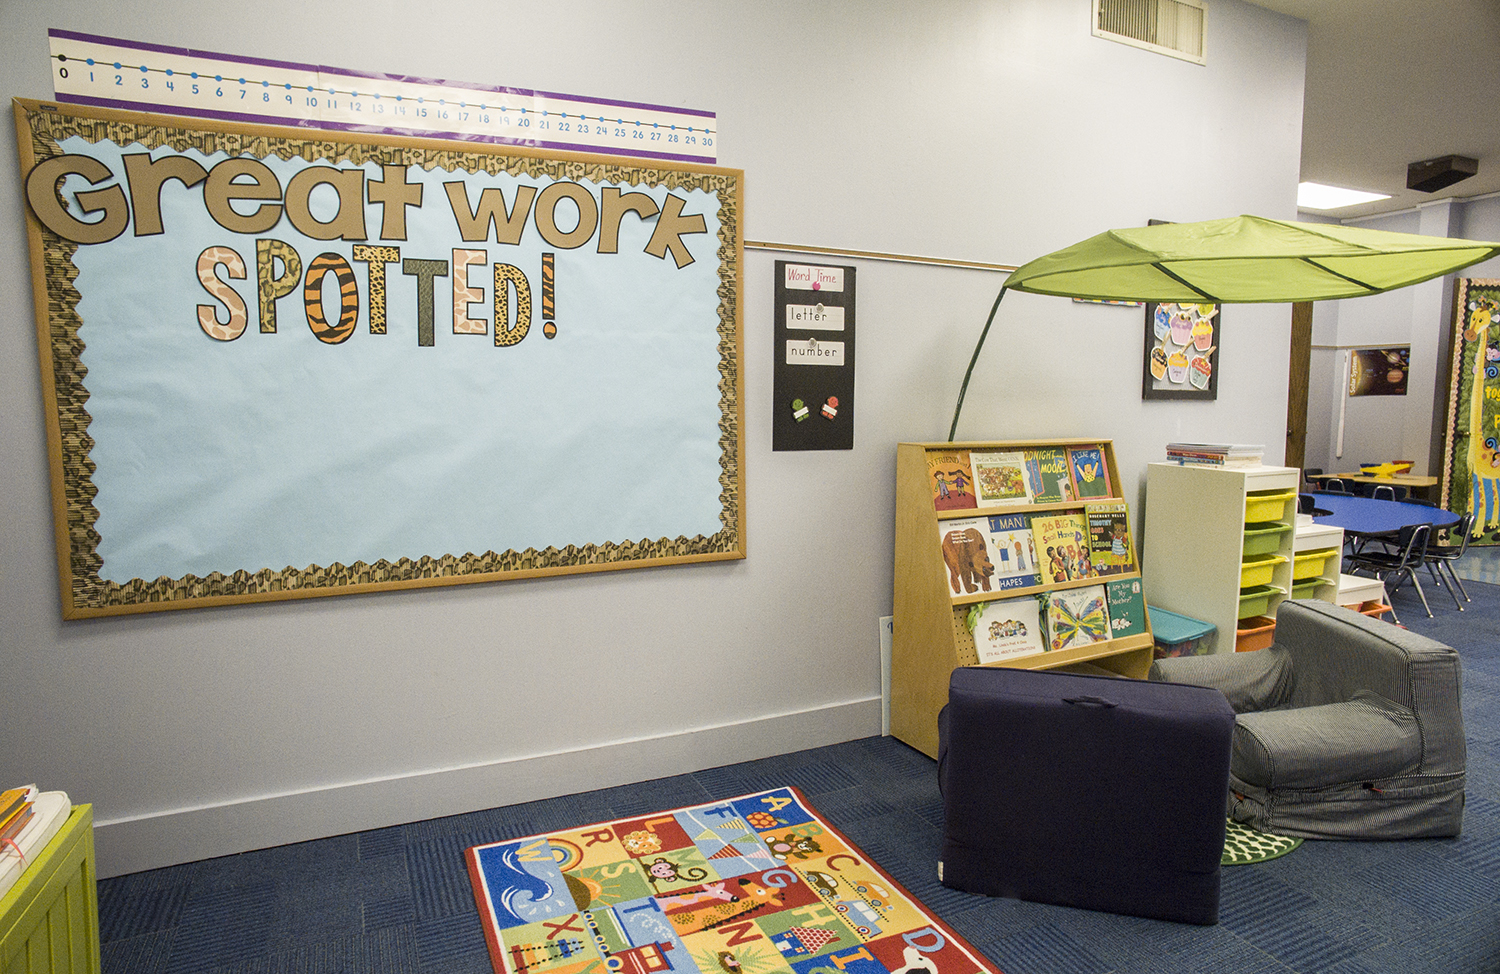 thehappyteacher classroom decor ideas and tips create a cozy classroom reading nook with ikea leaf great work spotted bulletin board is